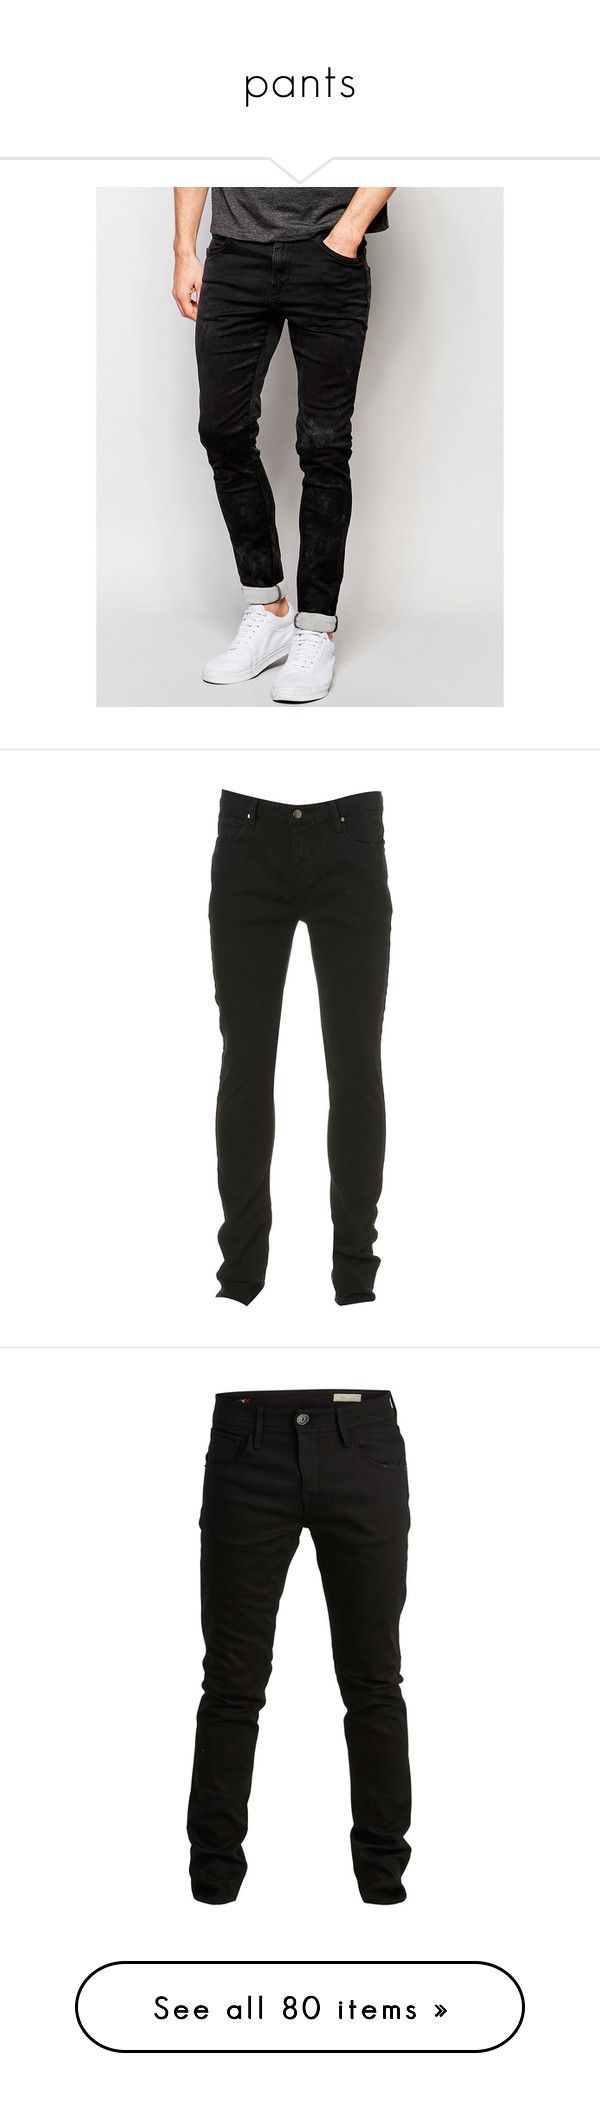 """pants"" by valentinsitems ❤ liked on Polyvore featuring men's fashion, men's clothing, men's jeans, black, replay mens jeans, mens super skinny jeans, mens dark wash jeans, mens skinny jeans, mens skinny fit jeans and jeans"